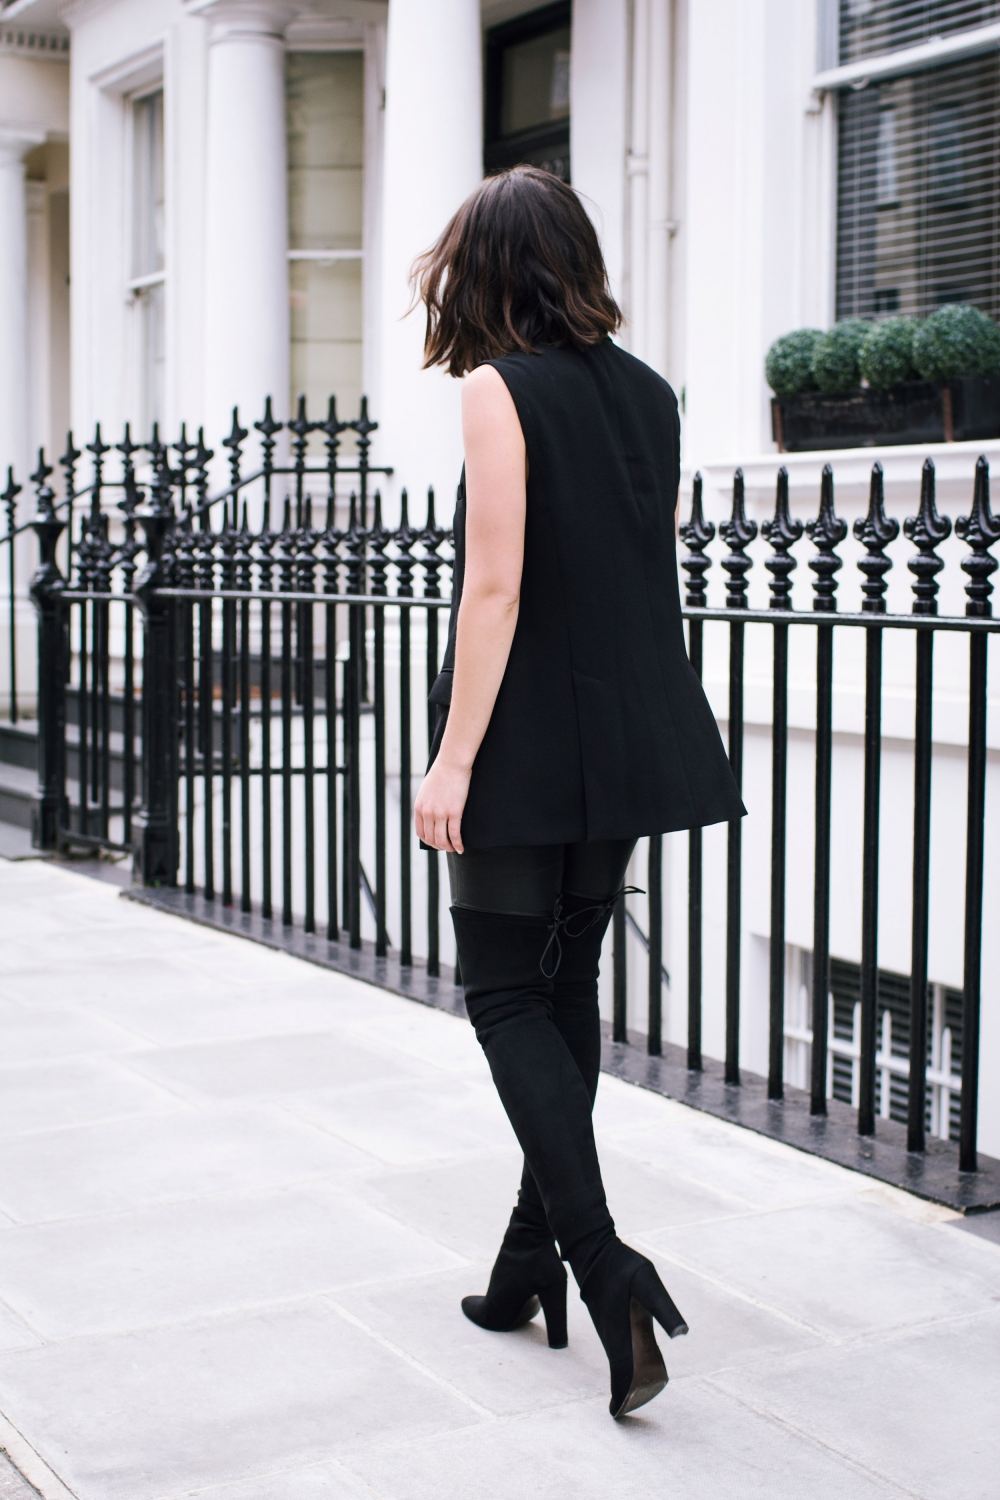 stuart weitzman over the knee black boot | harper and  harley